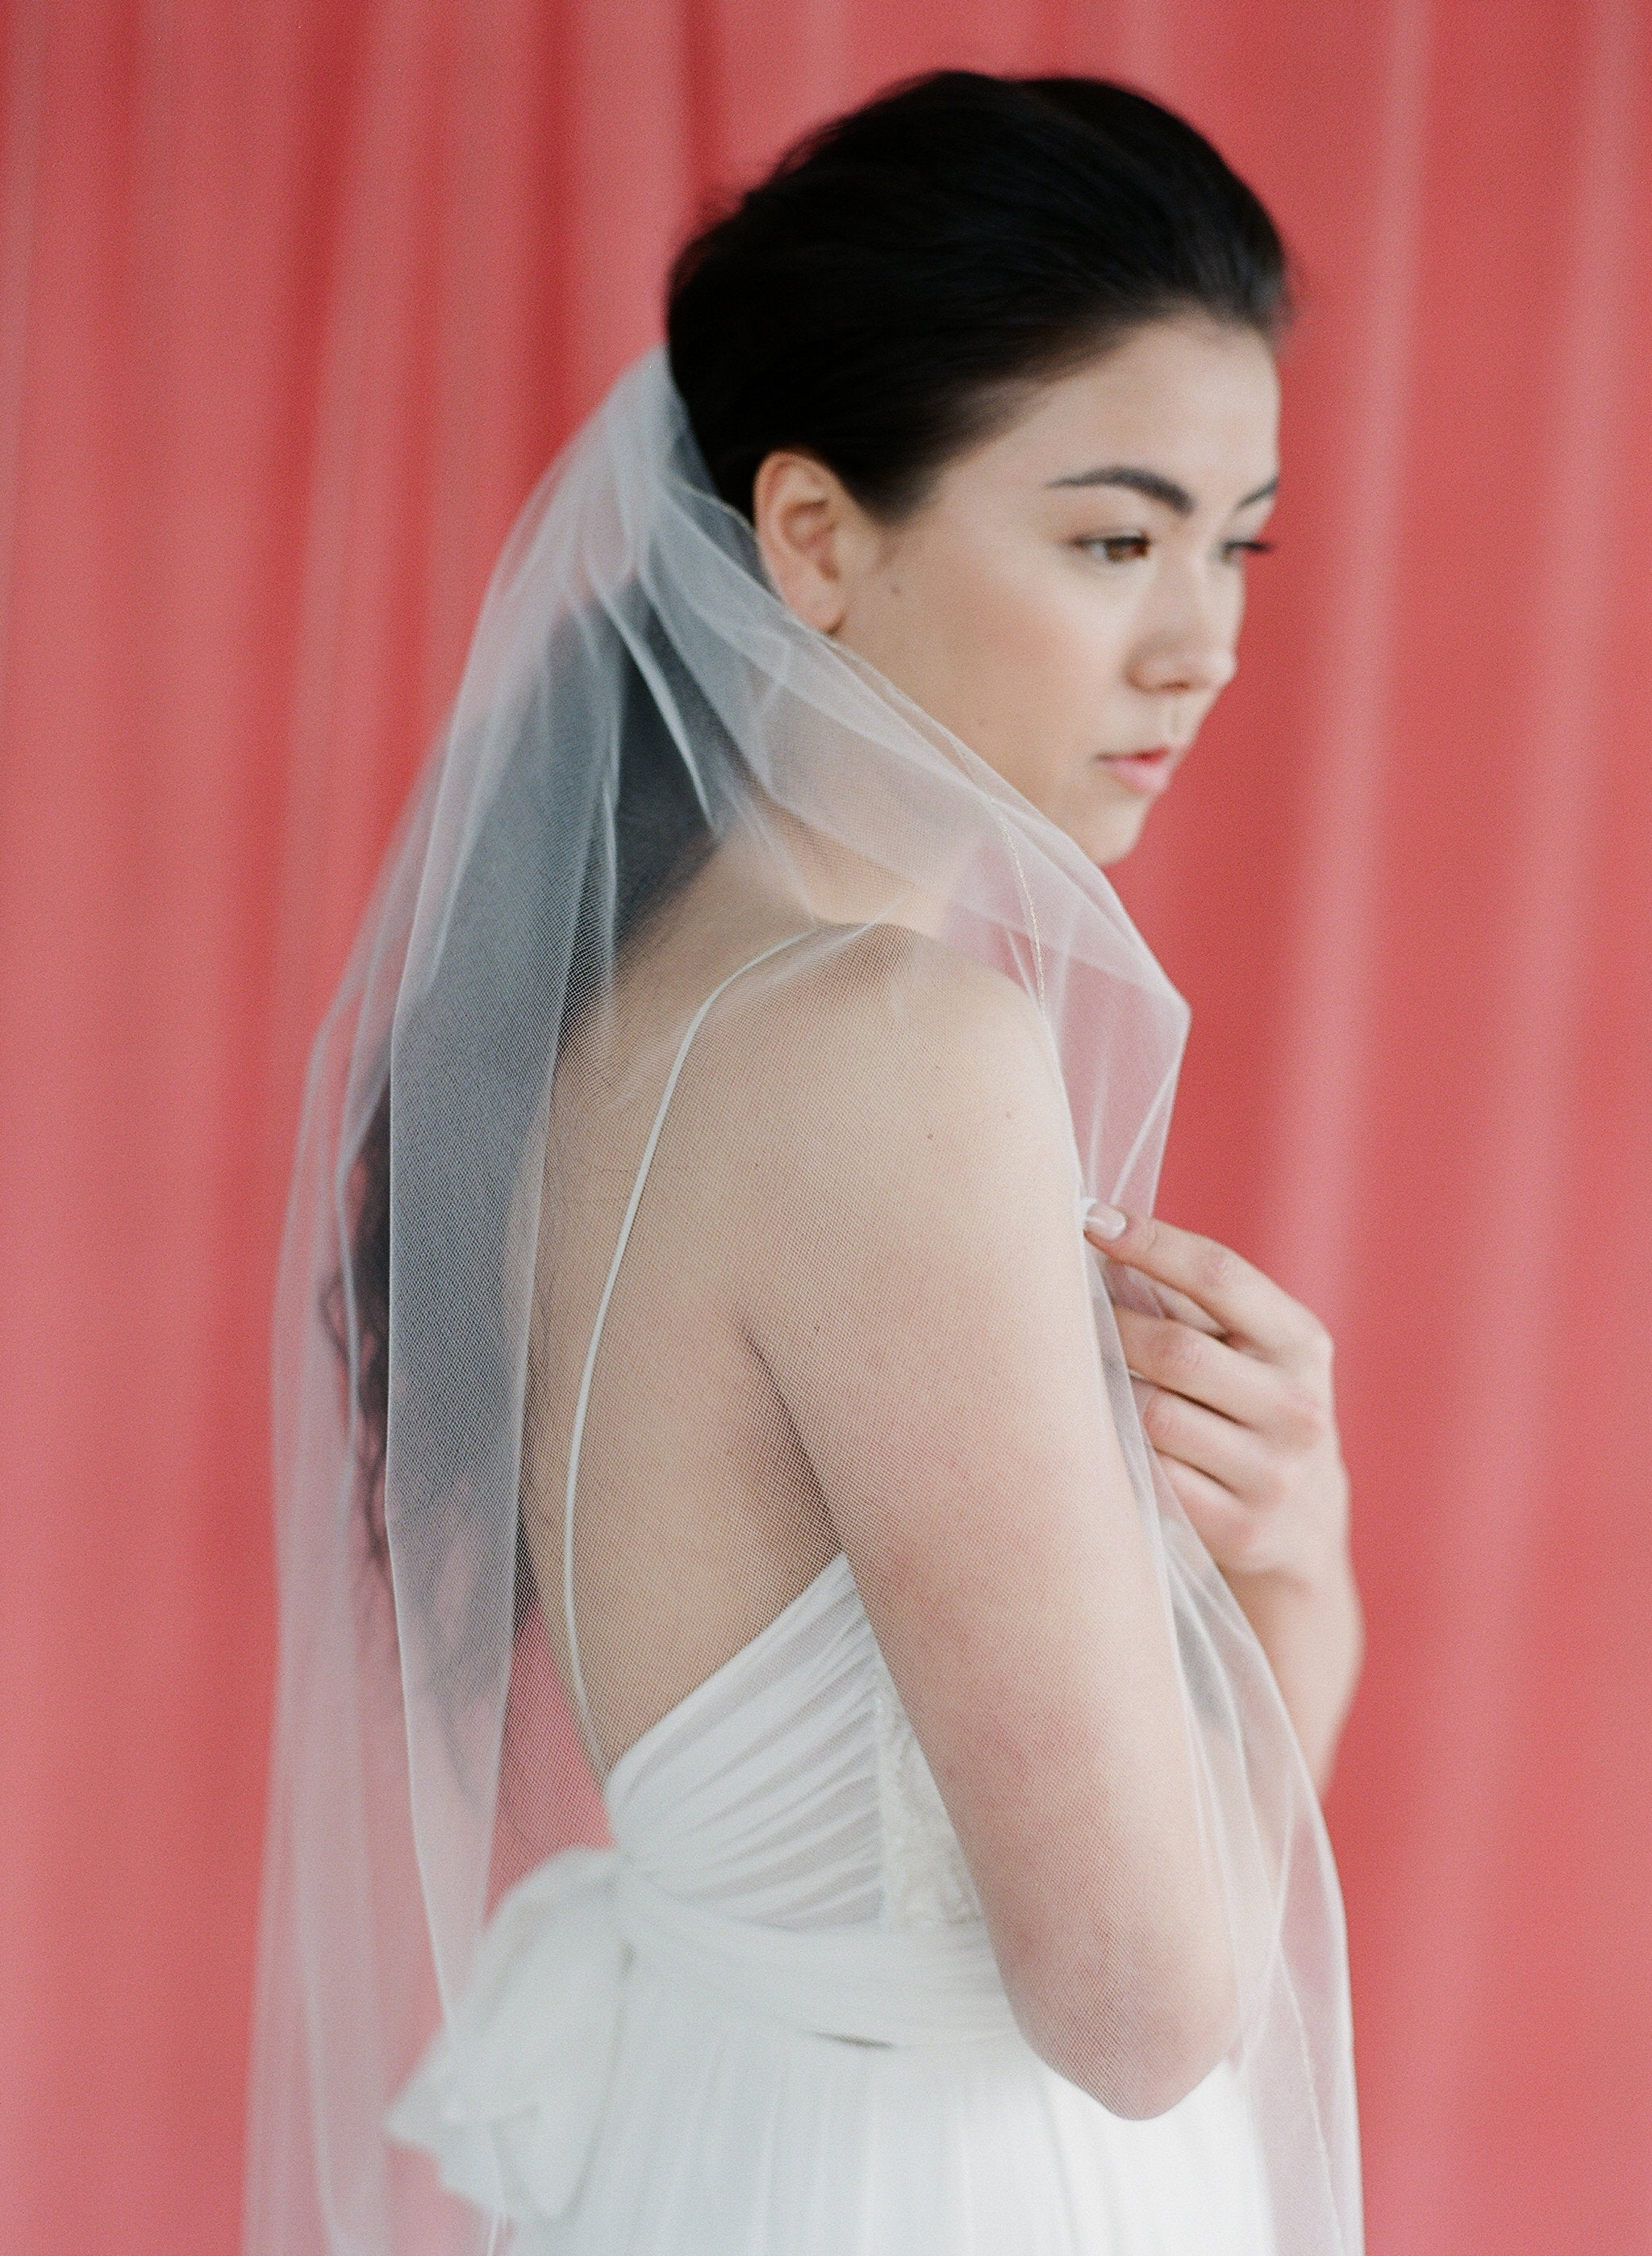 simple classic tulle veil with a subtle gold or silver metallic trim